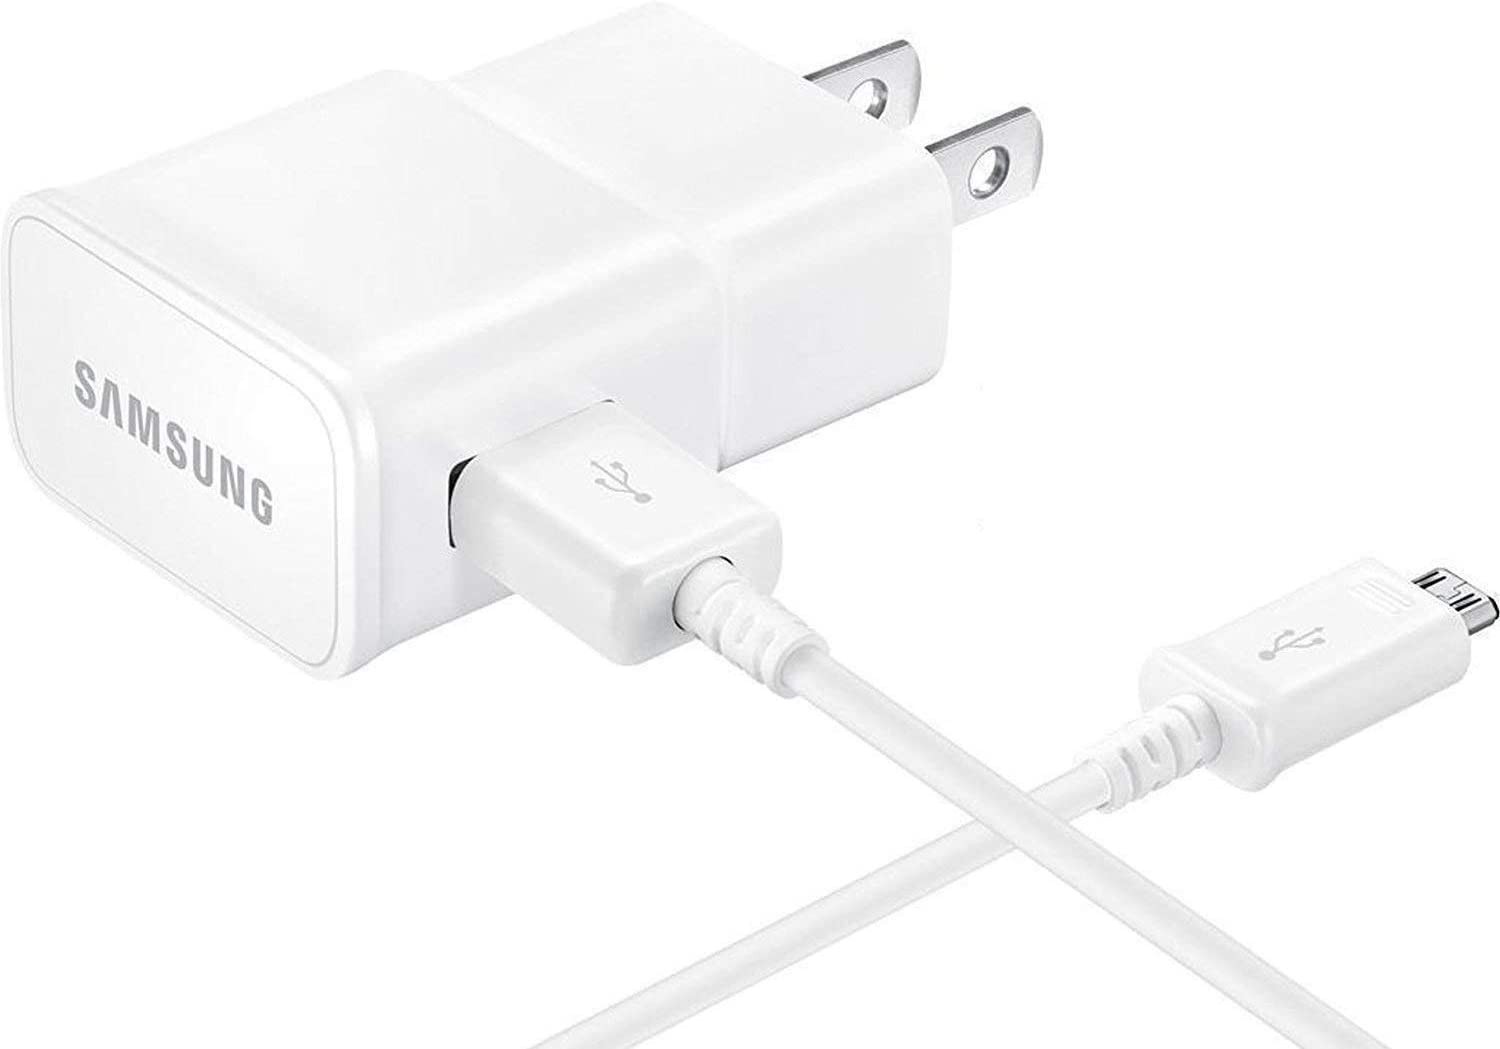 T-Mobile Samsung Galaxy J7 2015 Adaptive Fast Charger Micro USB Cable Kit! [1 Wall Charger + 3 FT Micro USB Cable] AFC uses Dual voltages for up to 50% Faster Charging! - Bulk Packaging